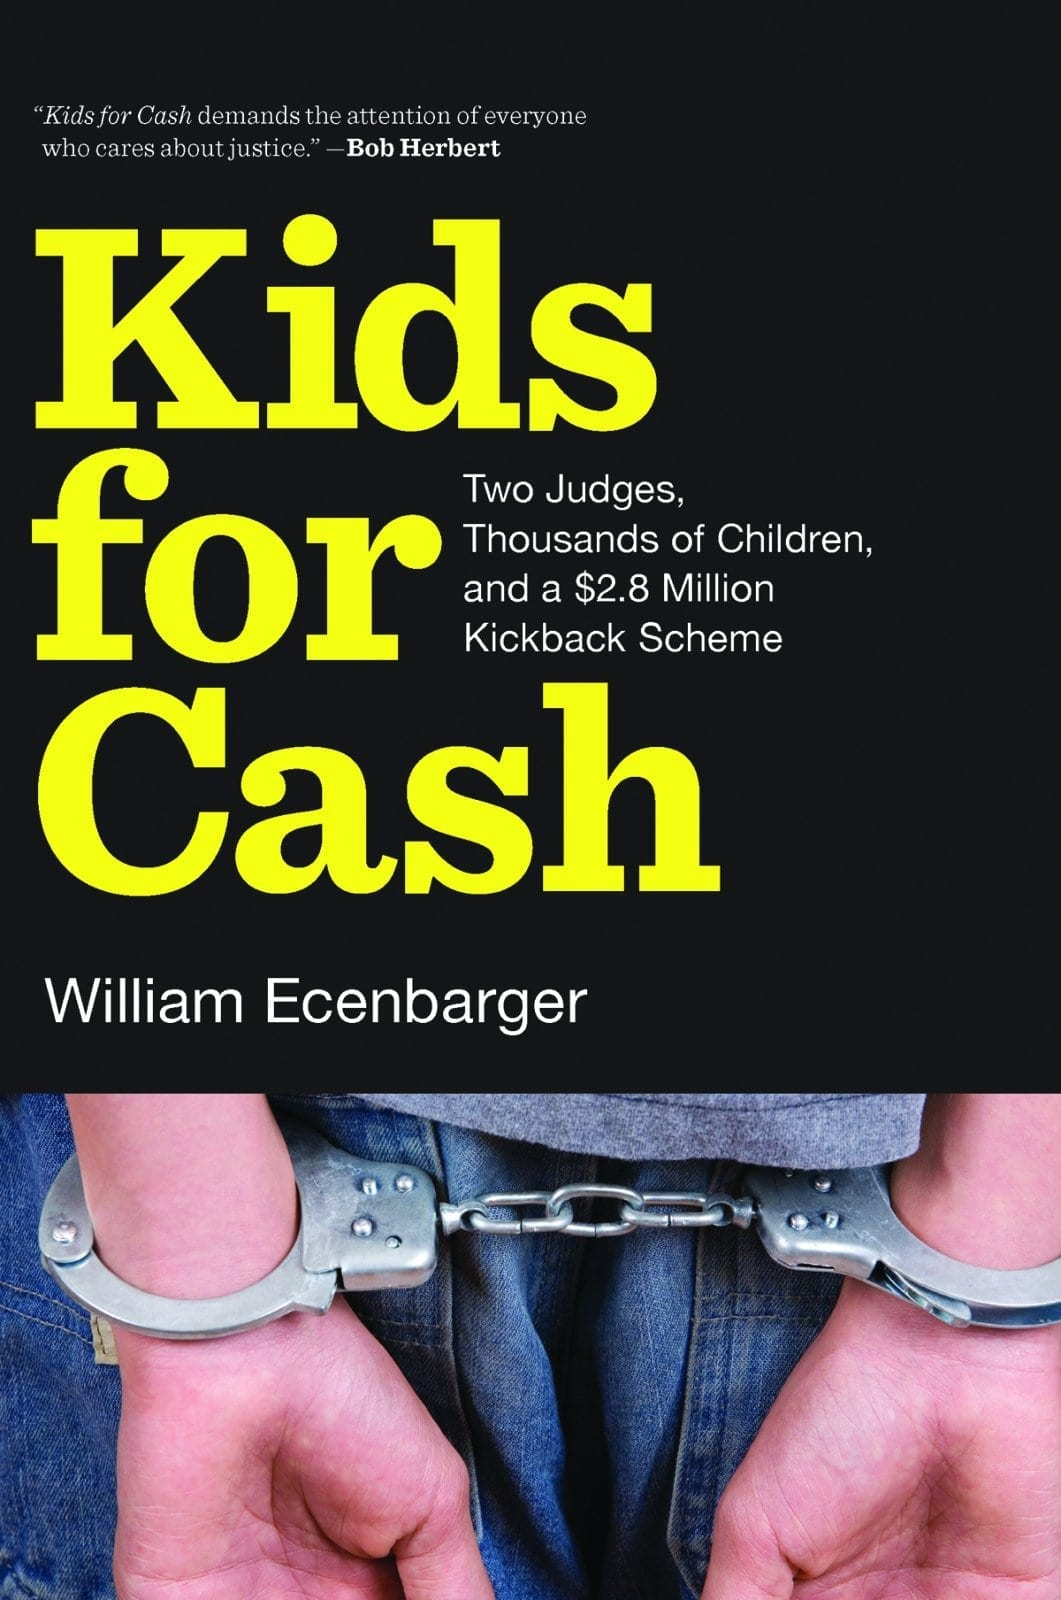 Kids for Cash: Two Judges, Thousands of Children, and a $2.8 Million Kickback Scheme by William Ecenbarger